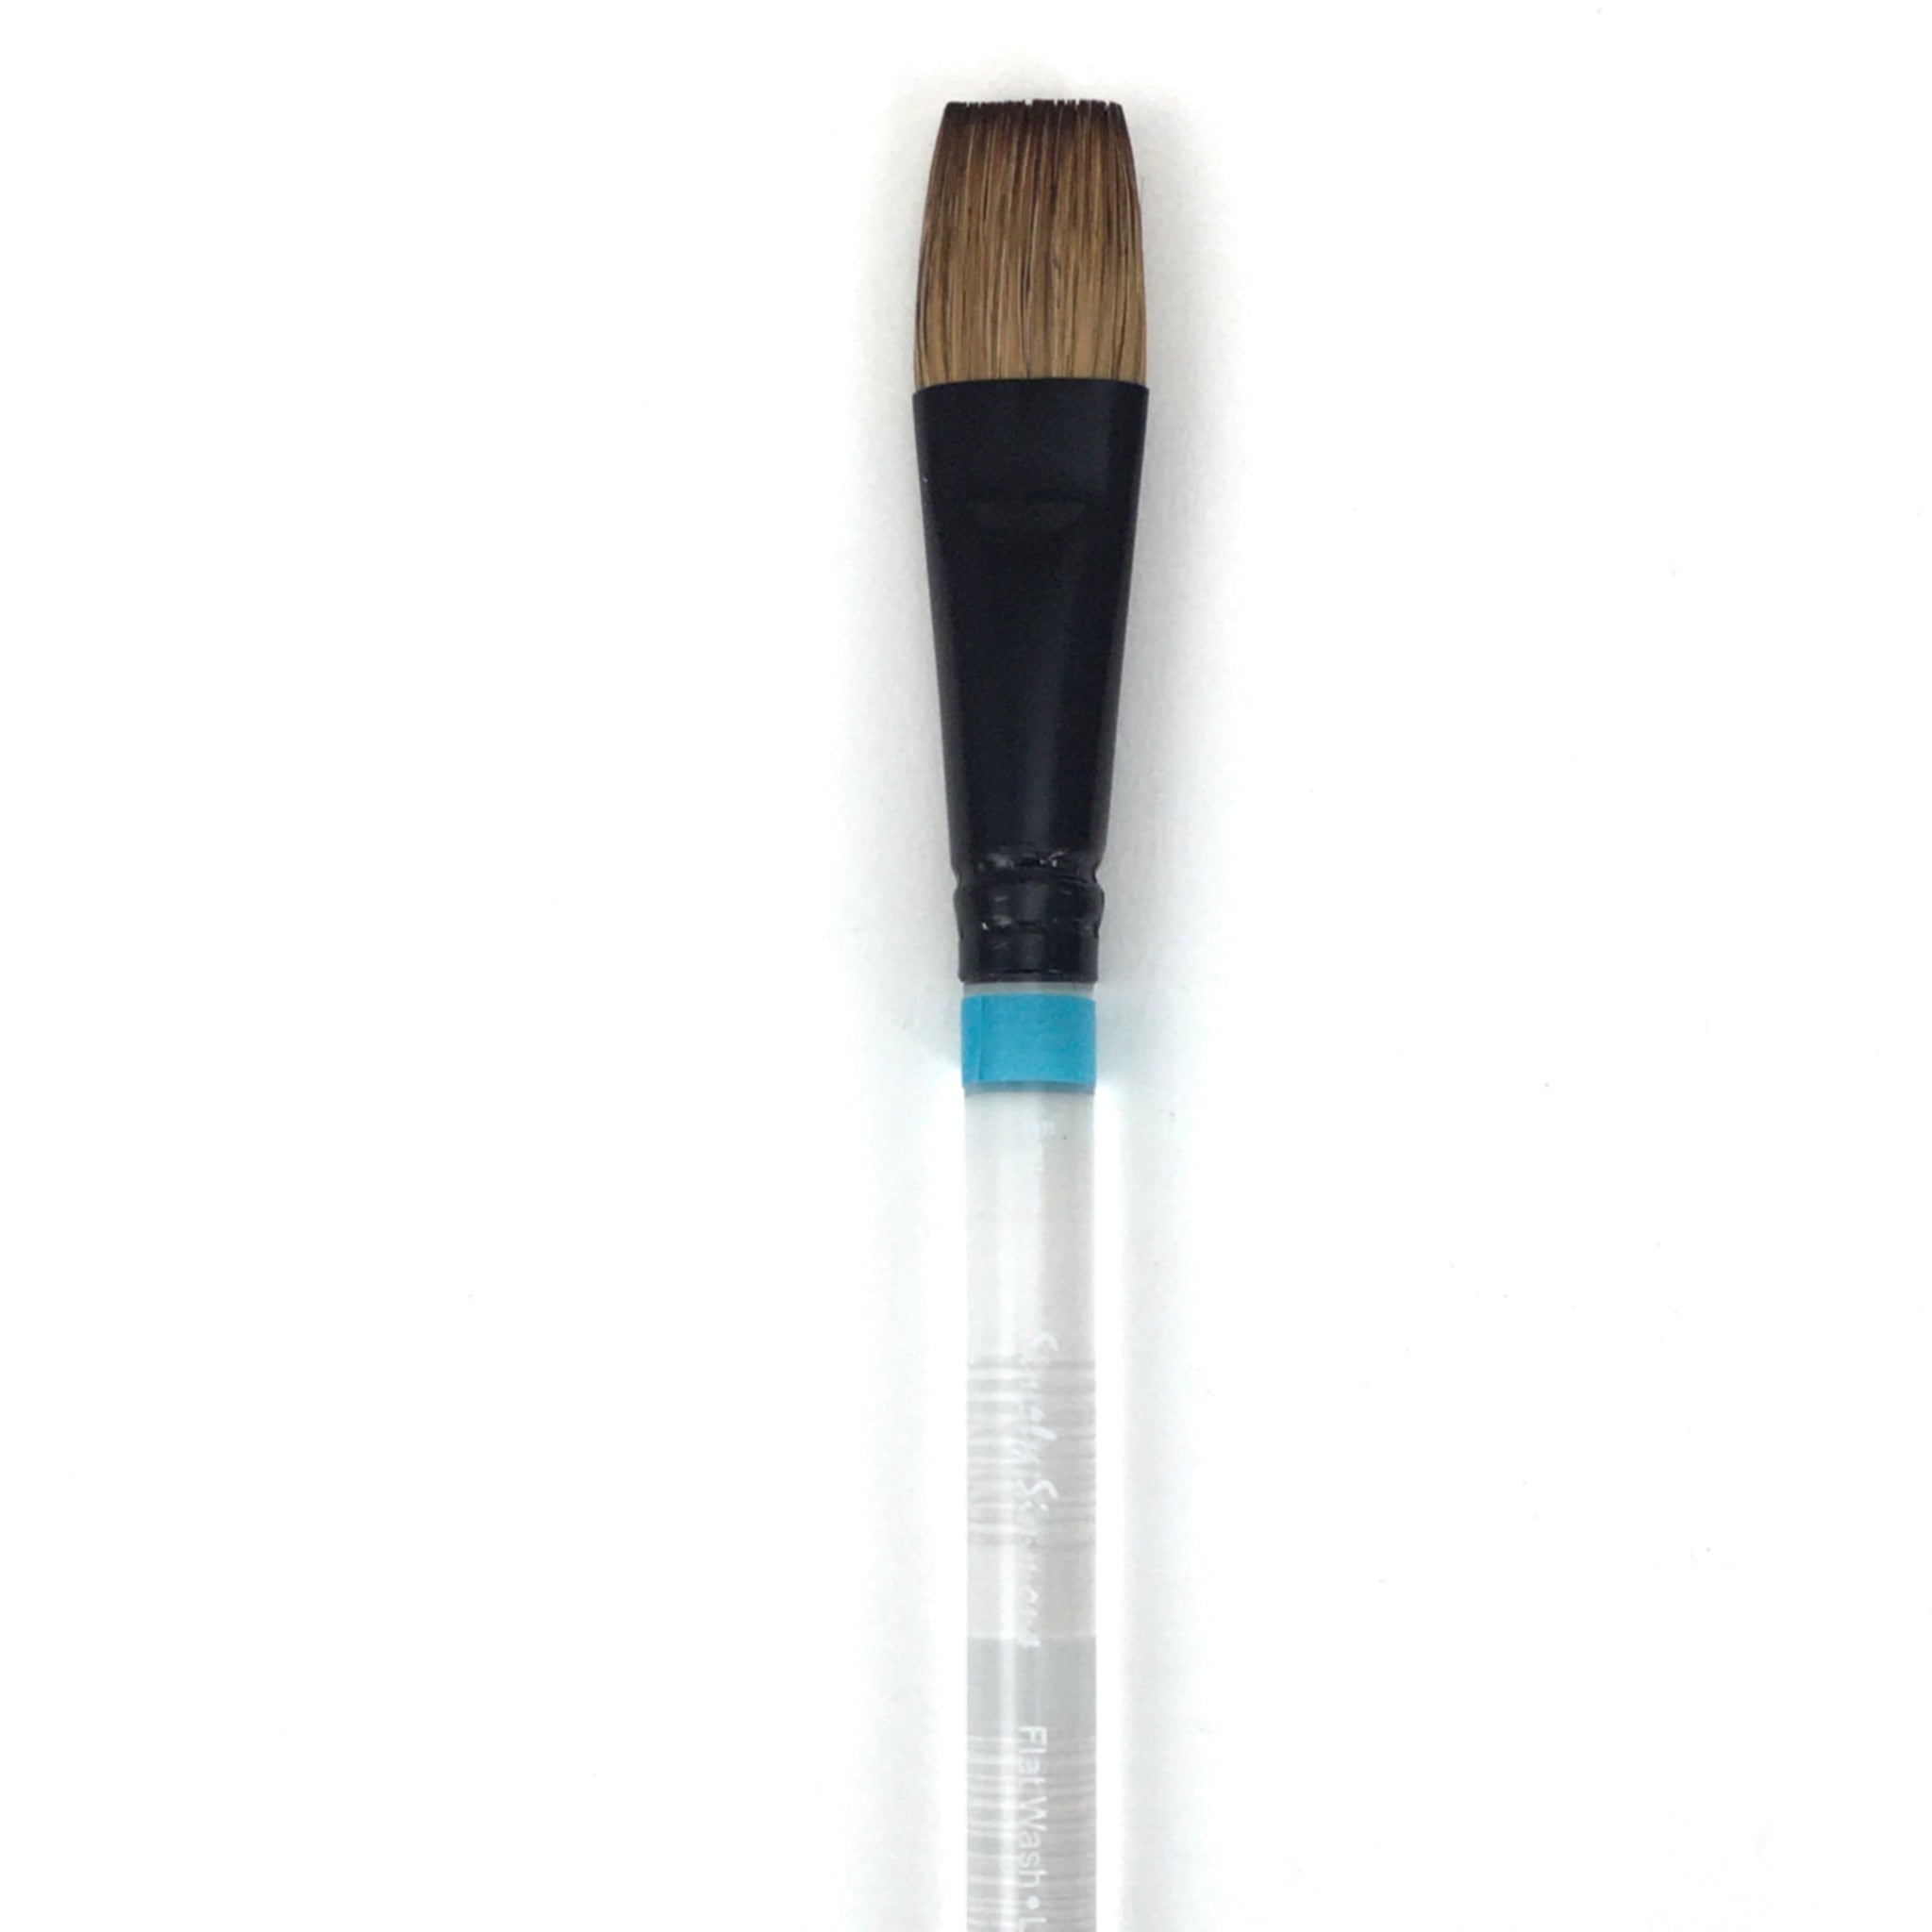 Robert Simmons Simply Simmons Watercolor Brush (Short Handle) - Flat Wash / - 3/4 inches / - natural by Robert Simmons - K. A. Artist Shop